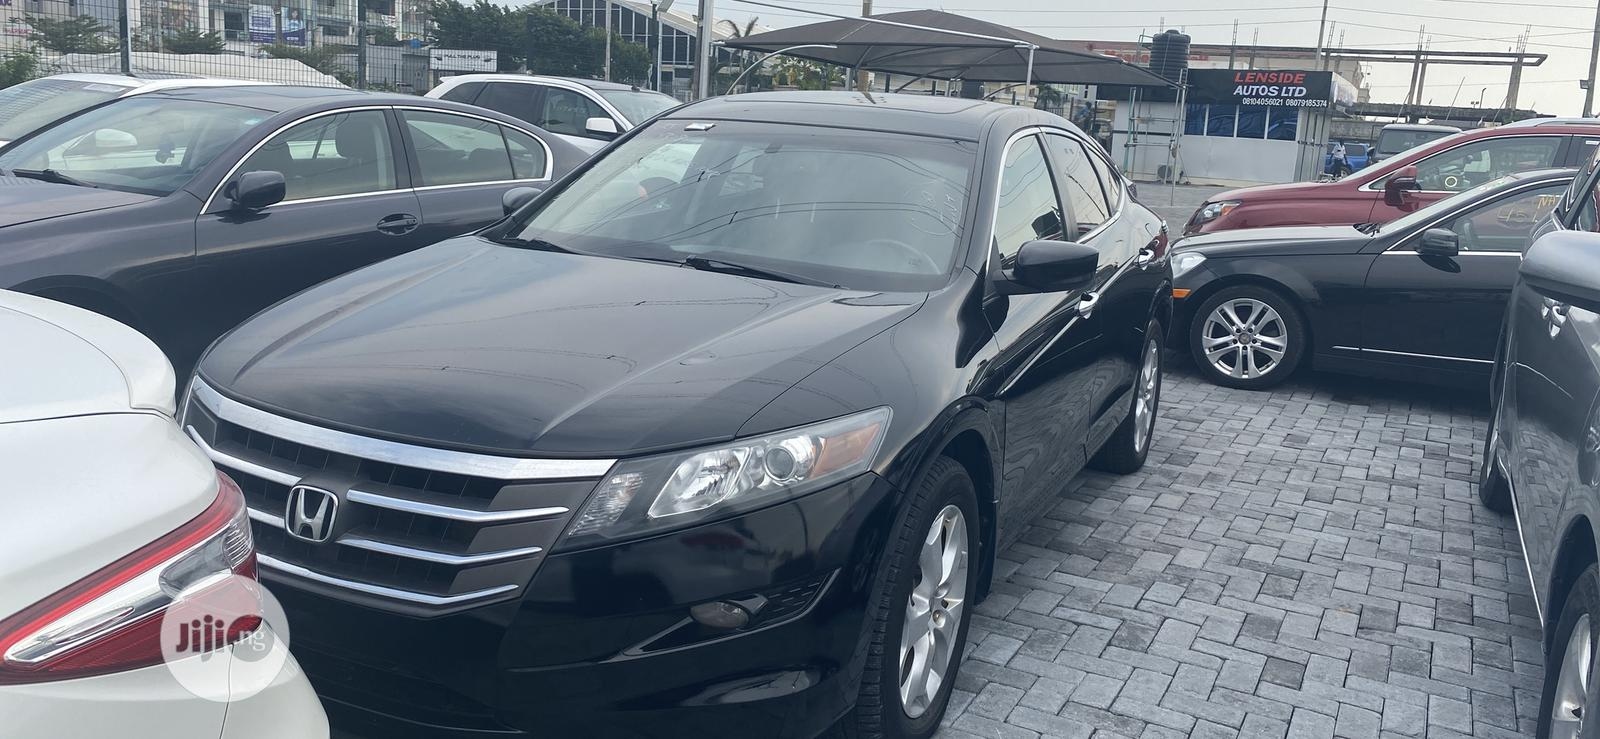 Honda Accord CrossTour 2010 EX-L AWD Black